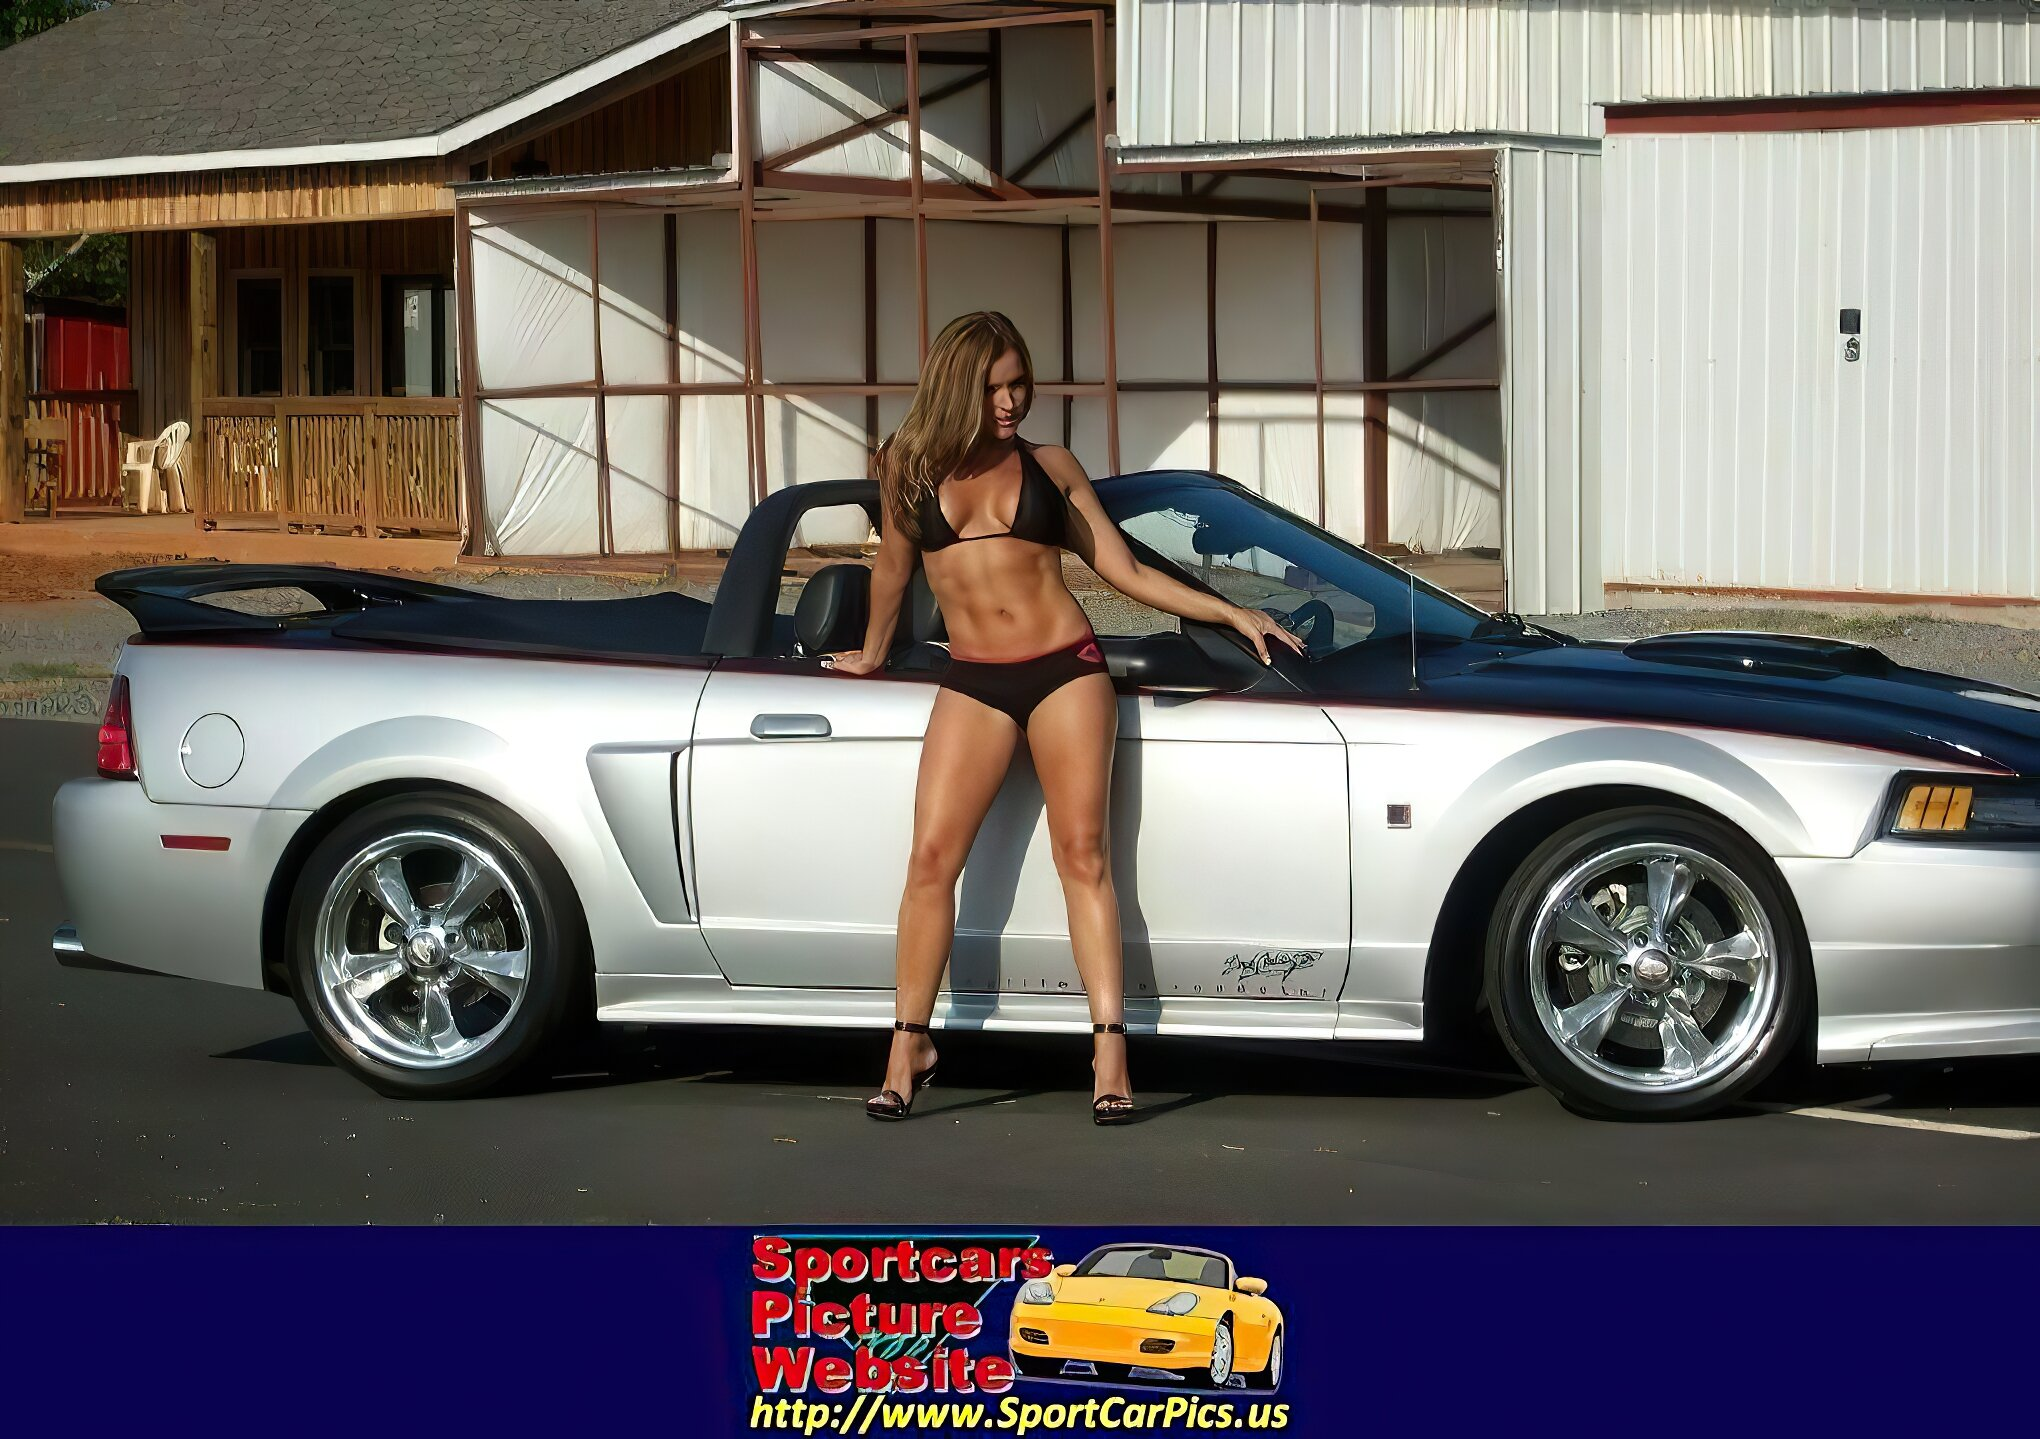 Ford Mustang - ID: 17390